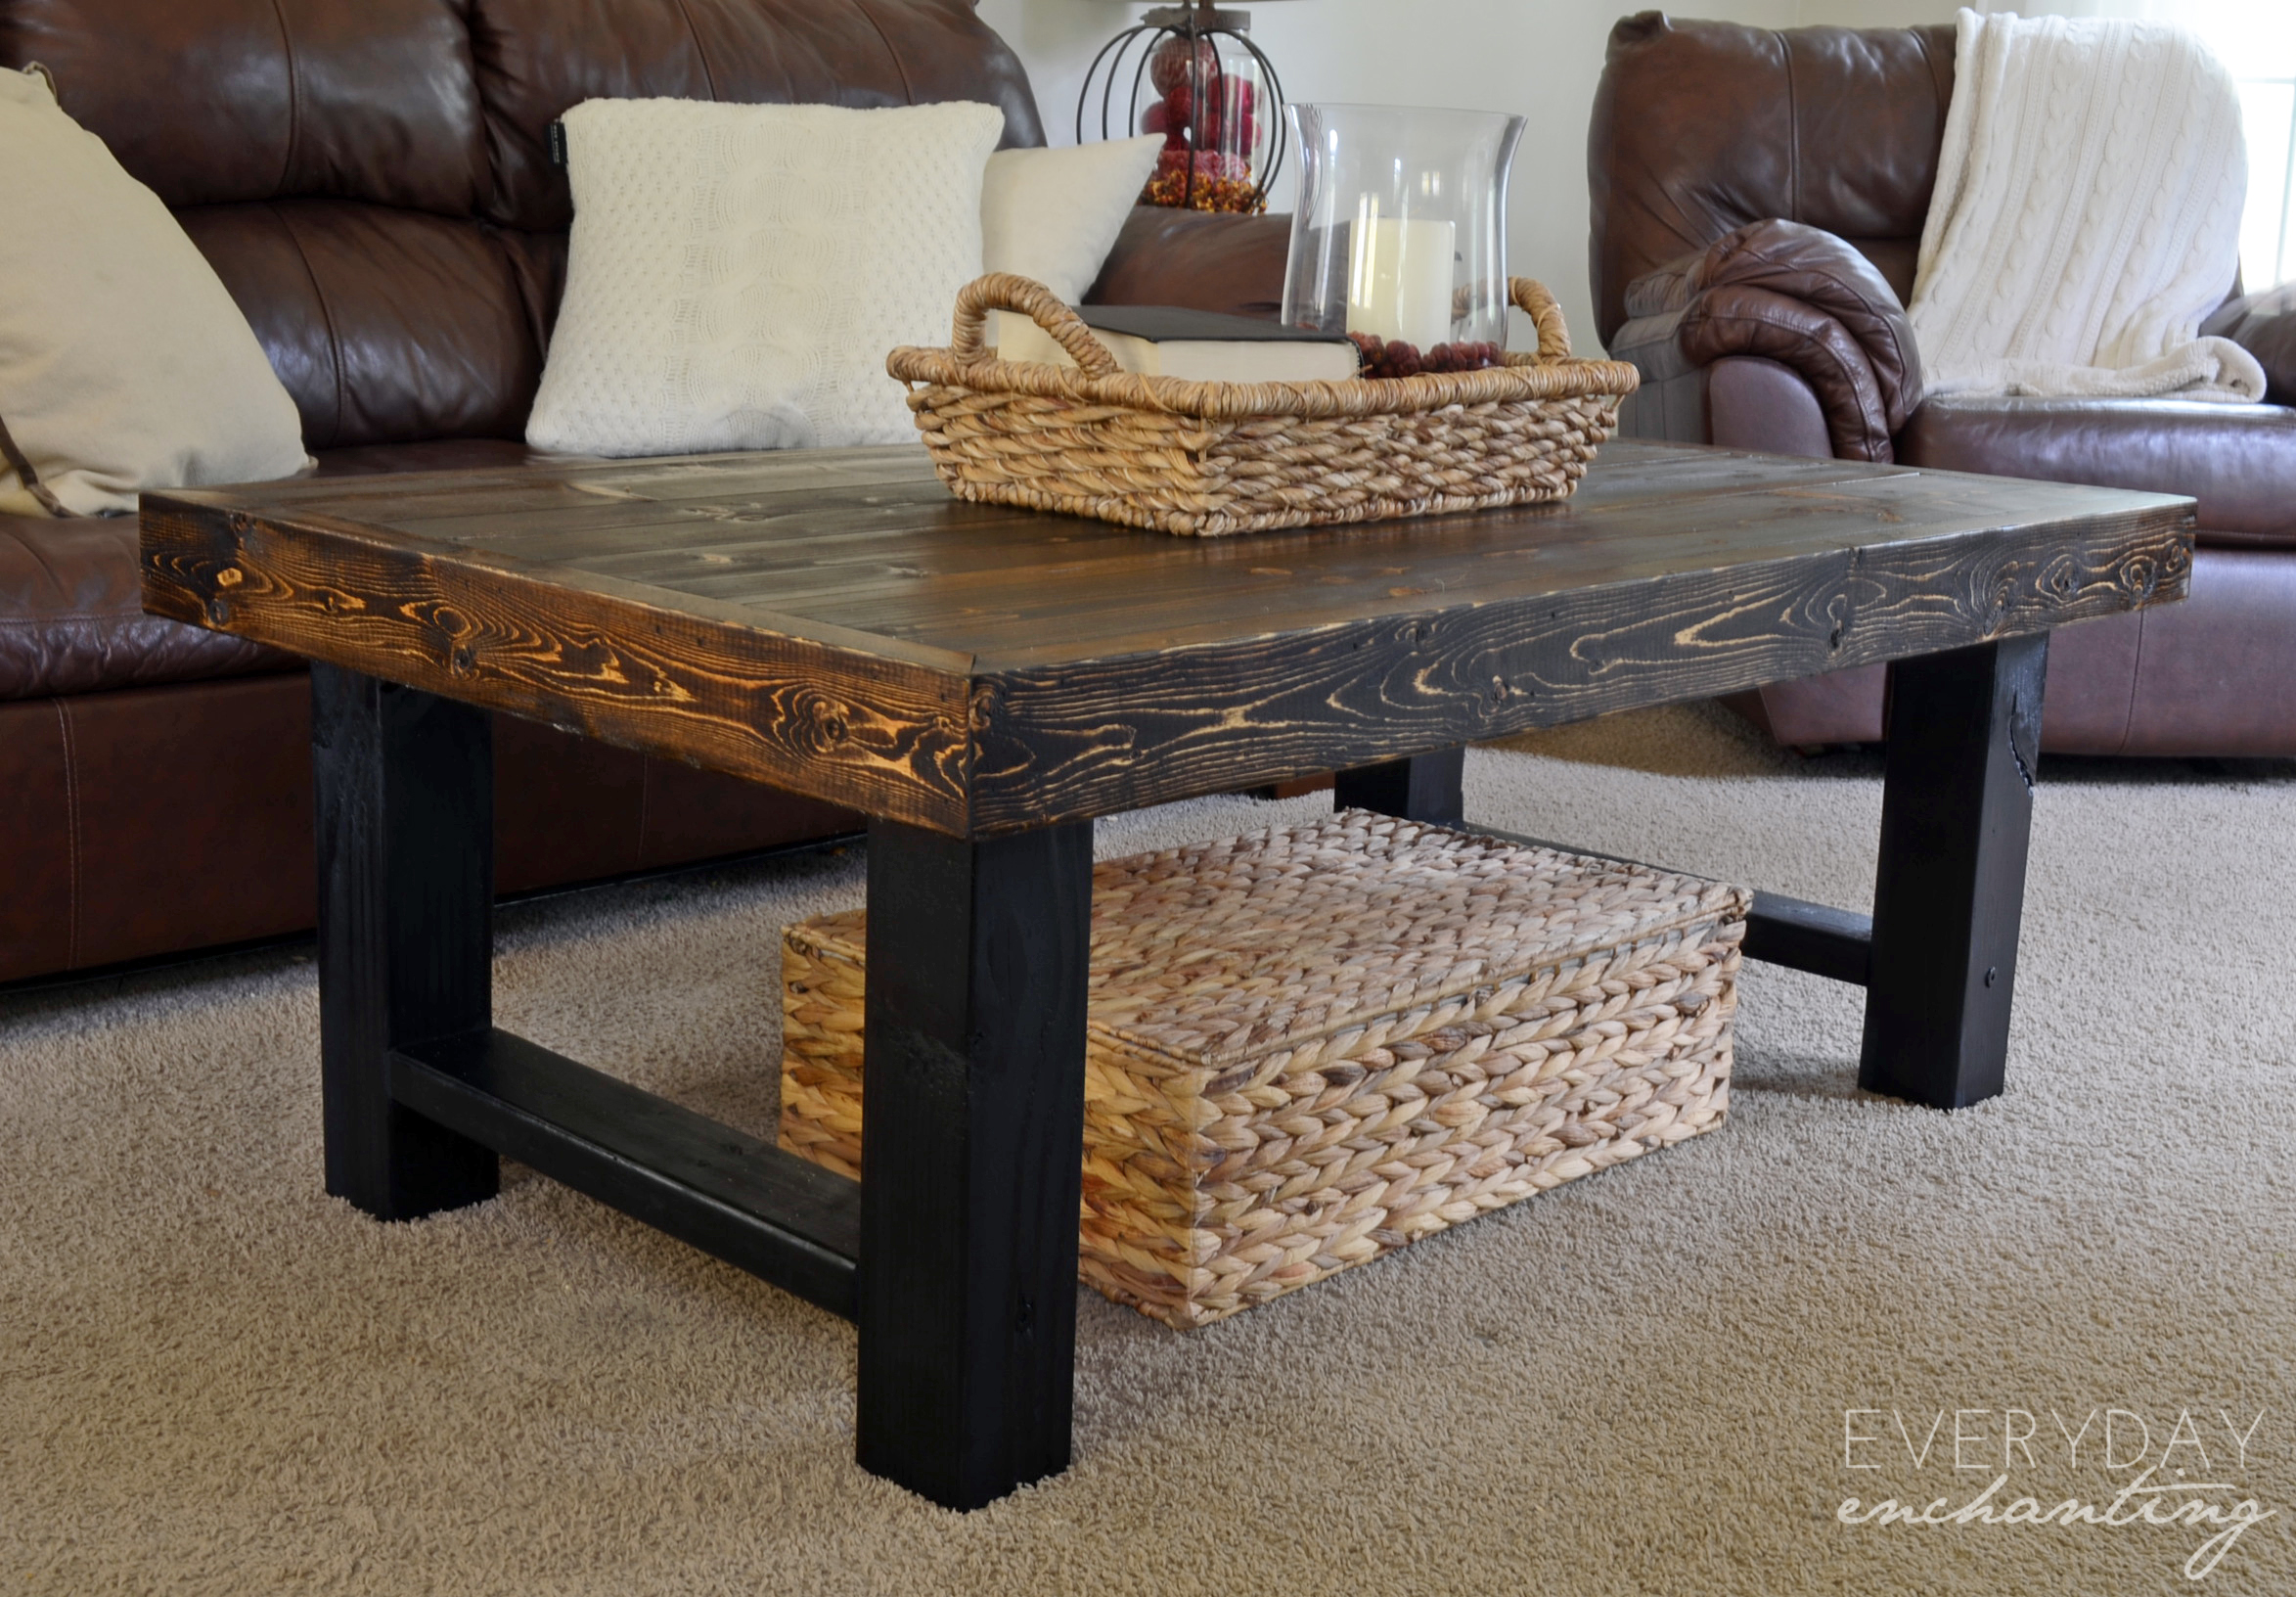 DIY Simple Coffee Table | Learn how to build a DIY Simple Coffee Table by  Everyday